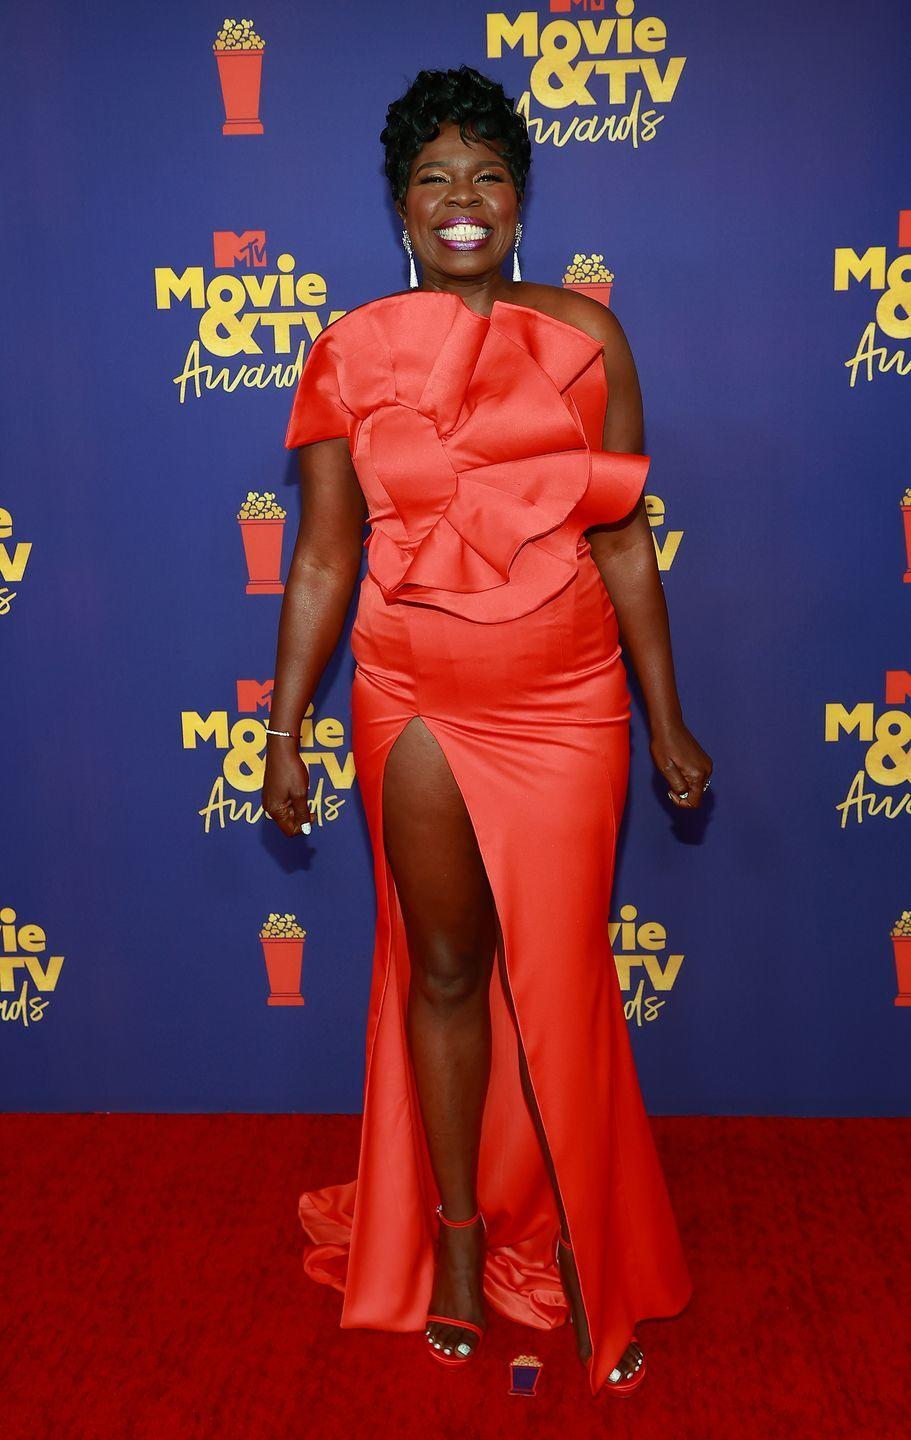 <p>Leslie Jones – who was presenting the award show, so went through a few fun looks – started out the evening in a colourful red gown with a floral motif.</p>